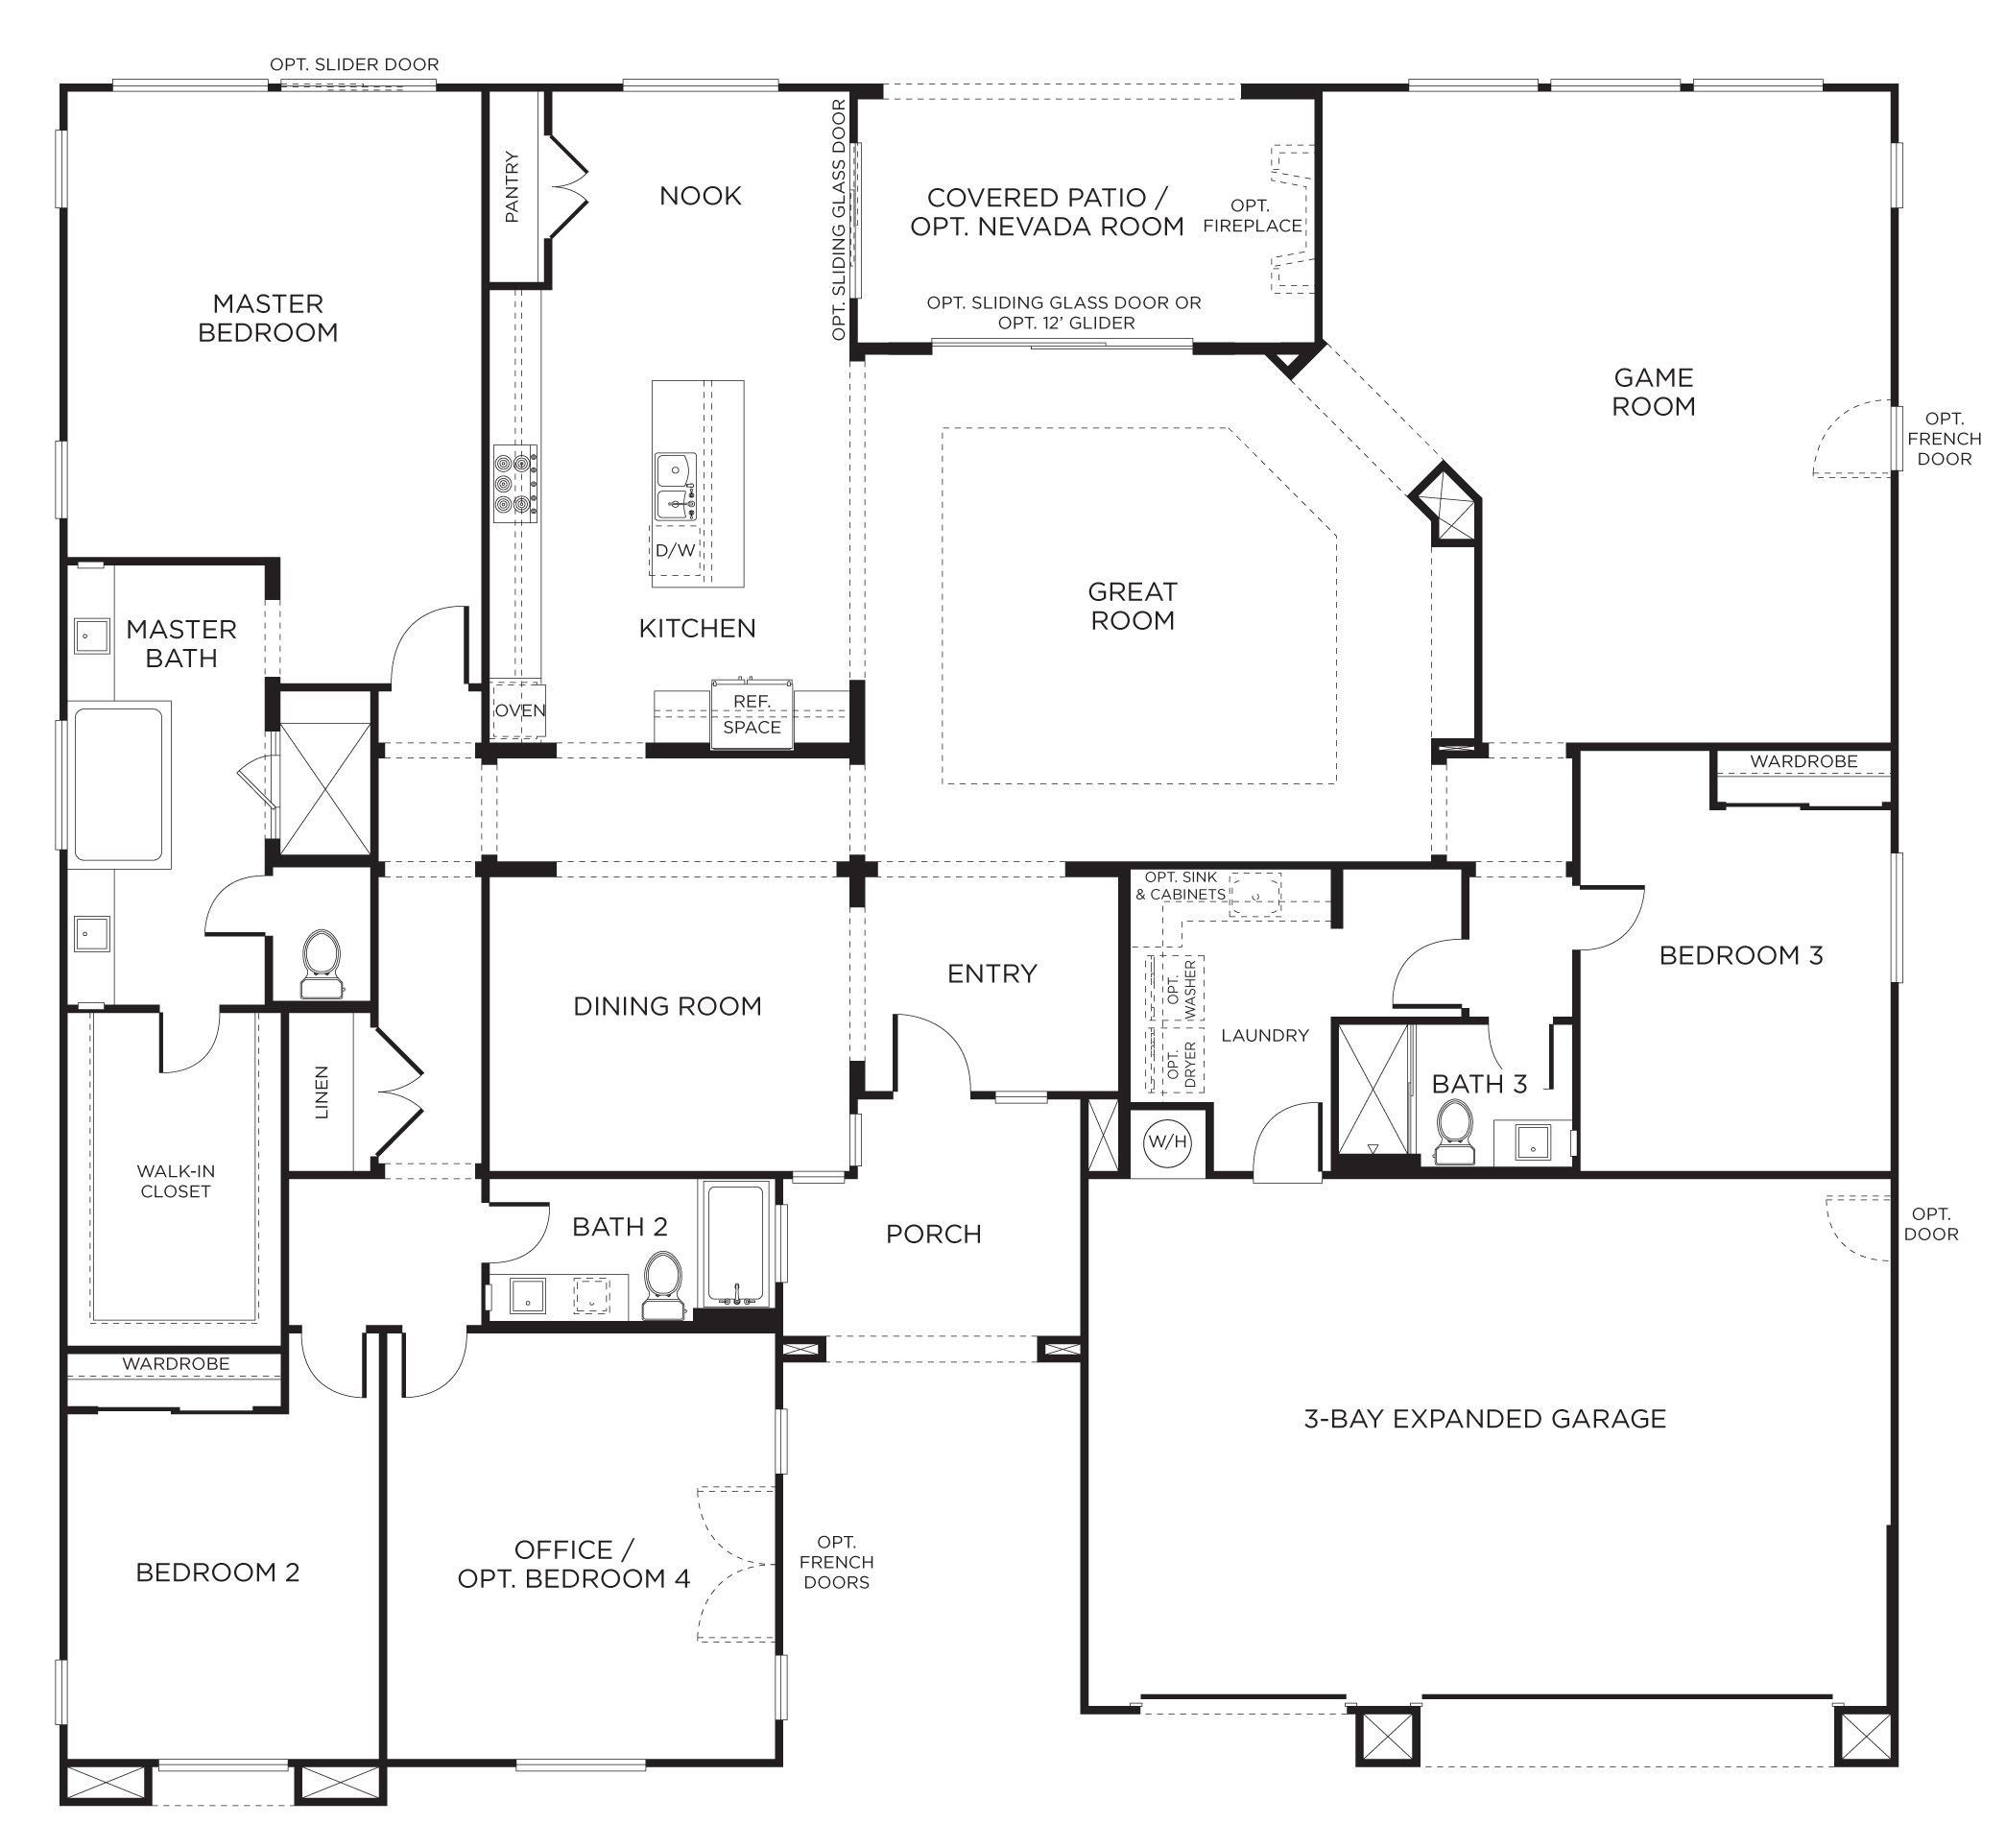 Floorplan 2 3 4 bedrooms 3 bathrooms 3400 square feet for 4 bedroom 3 story house plans